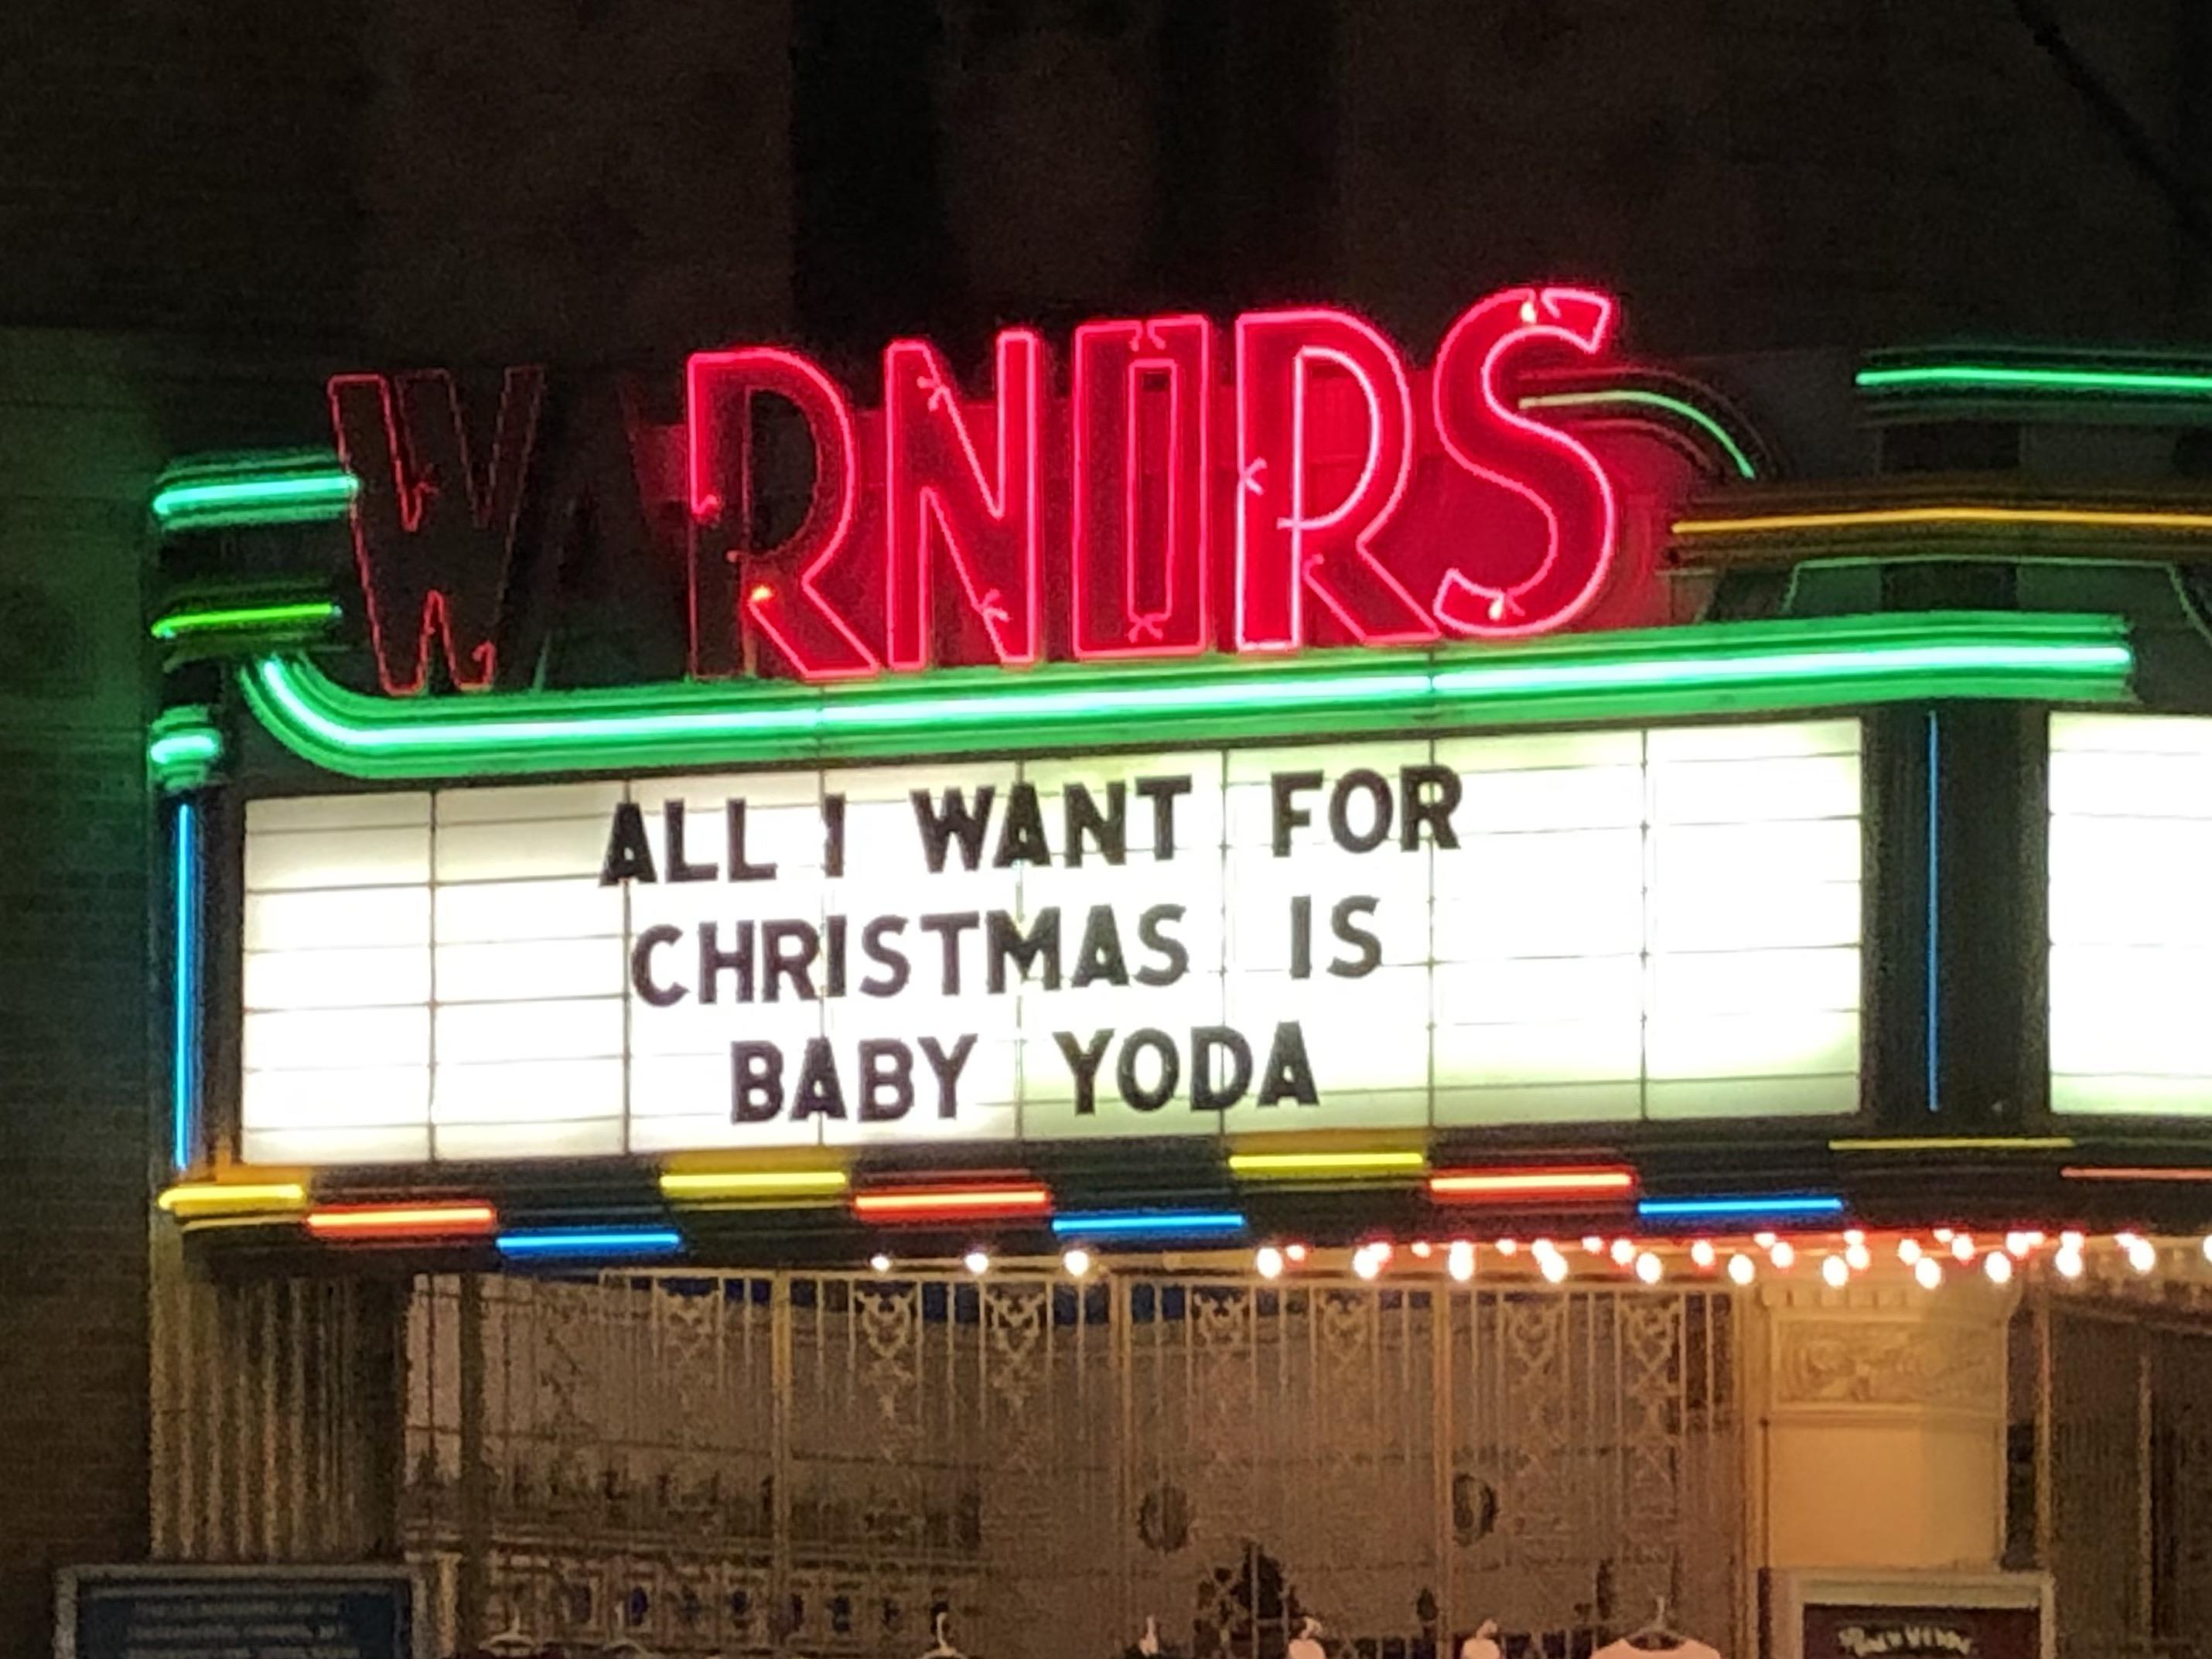 Even the local theater is on board